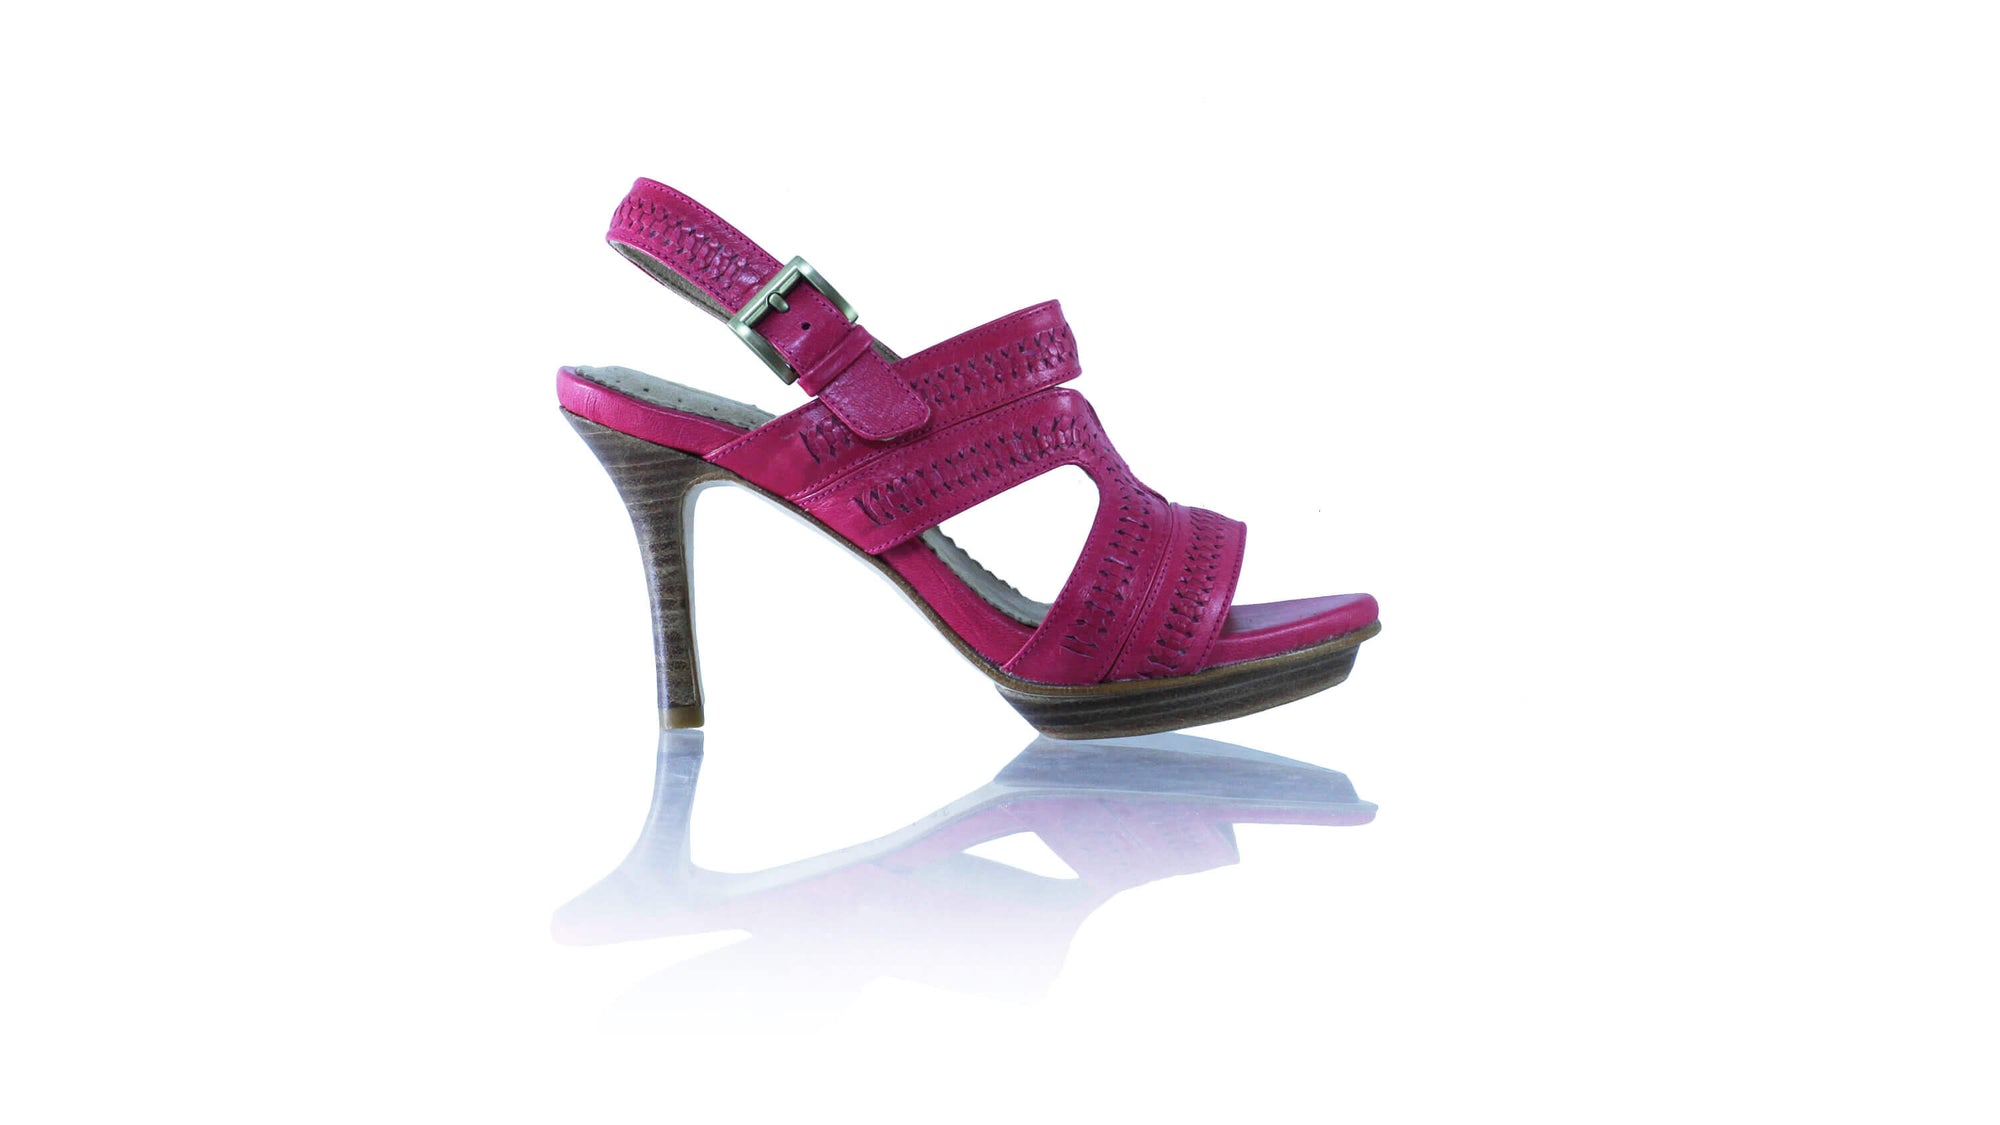 Leather-shoes-Lilies 90mm SH PF - Fuschia-sandals higheel-NILUH DJELANTIK-NILUH DJELANTIK